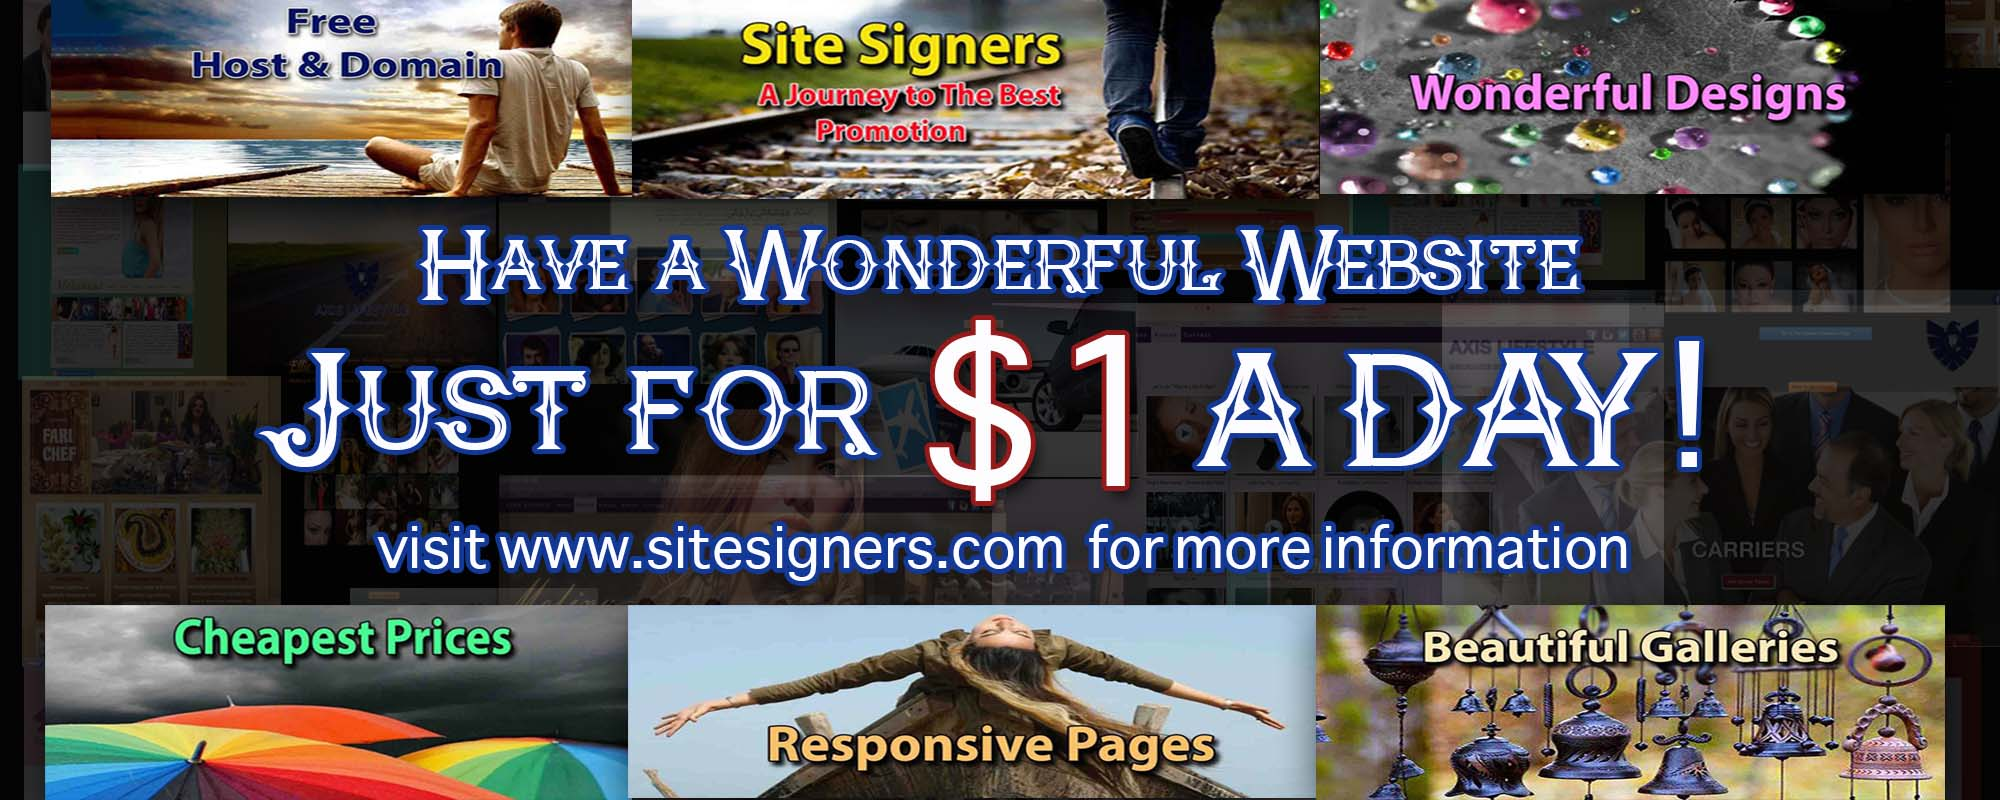 Pay $1 a day for website